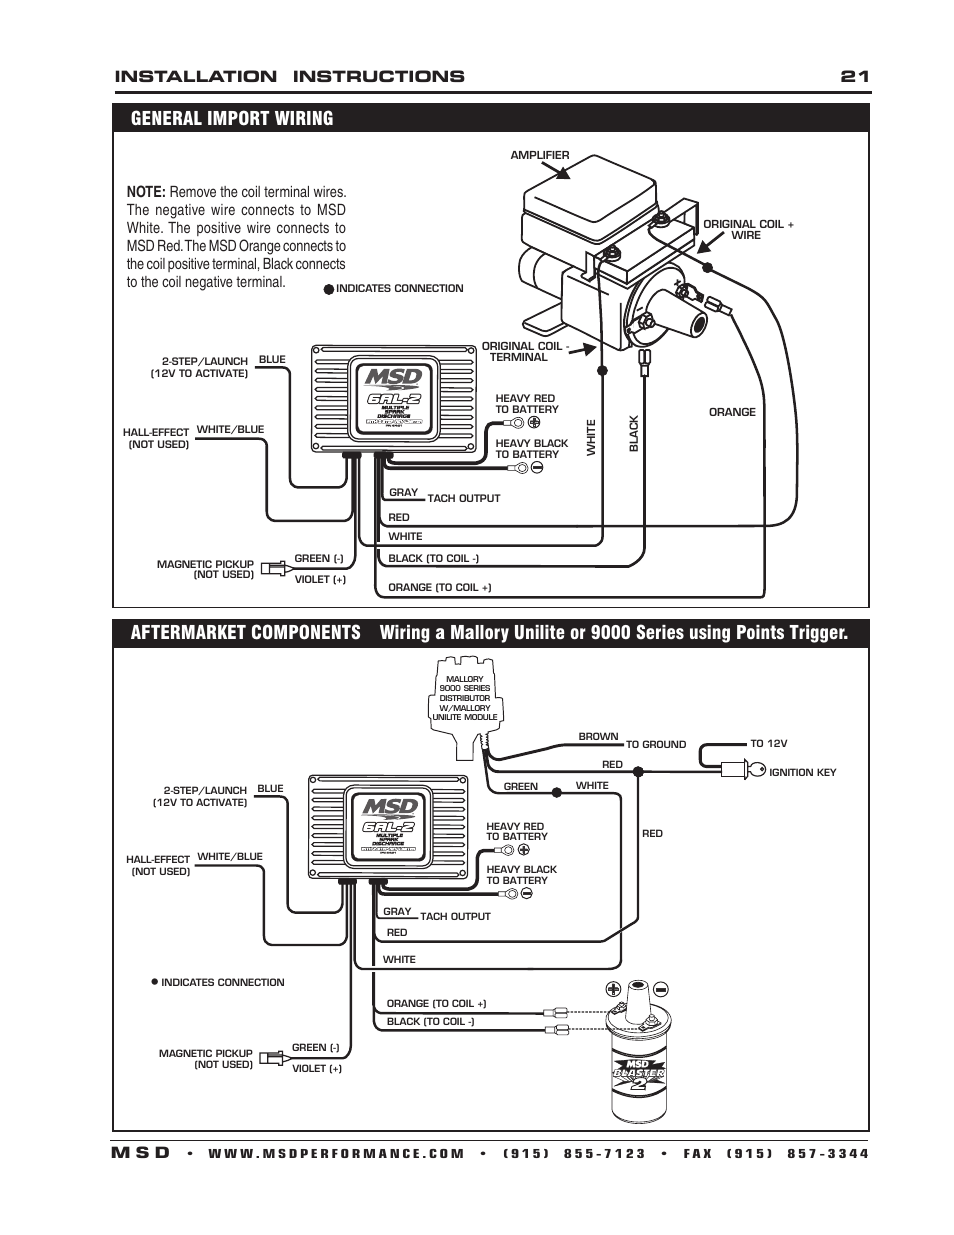 Mallory Unilite Wiring Diagram from diagramweb.net